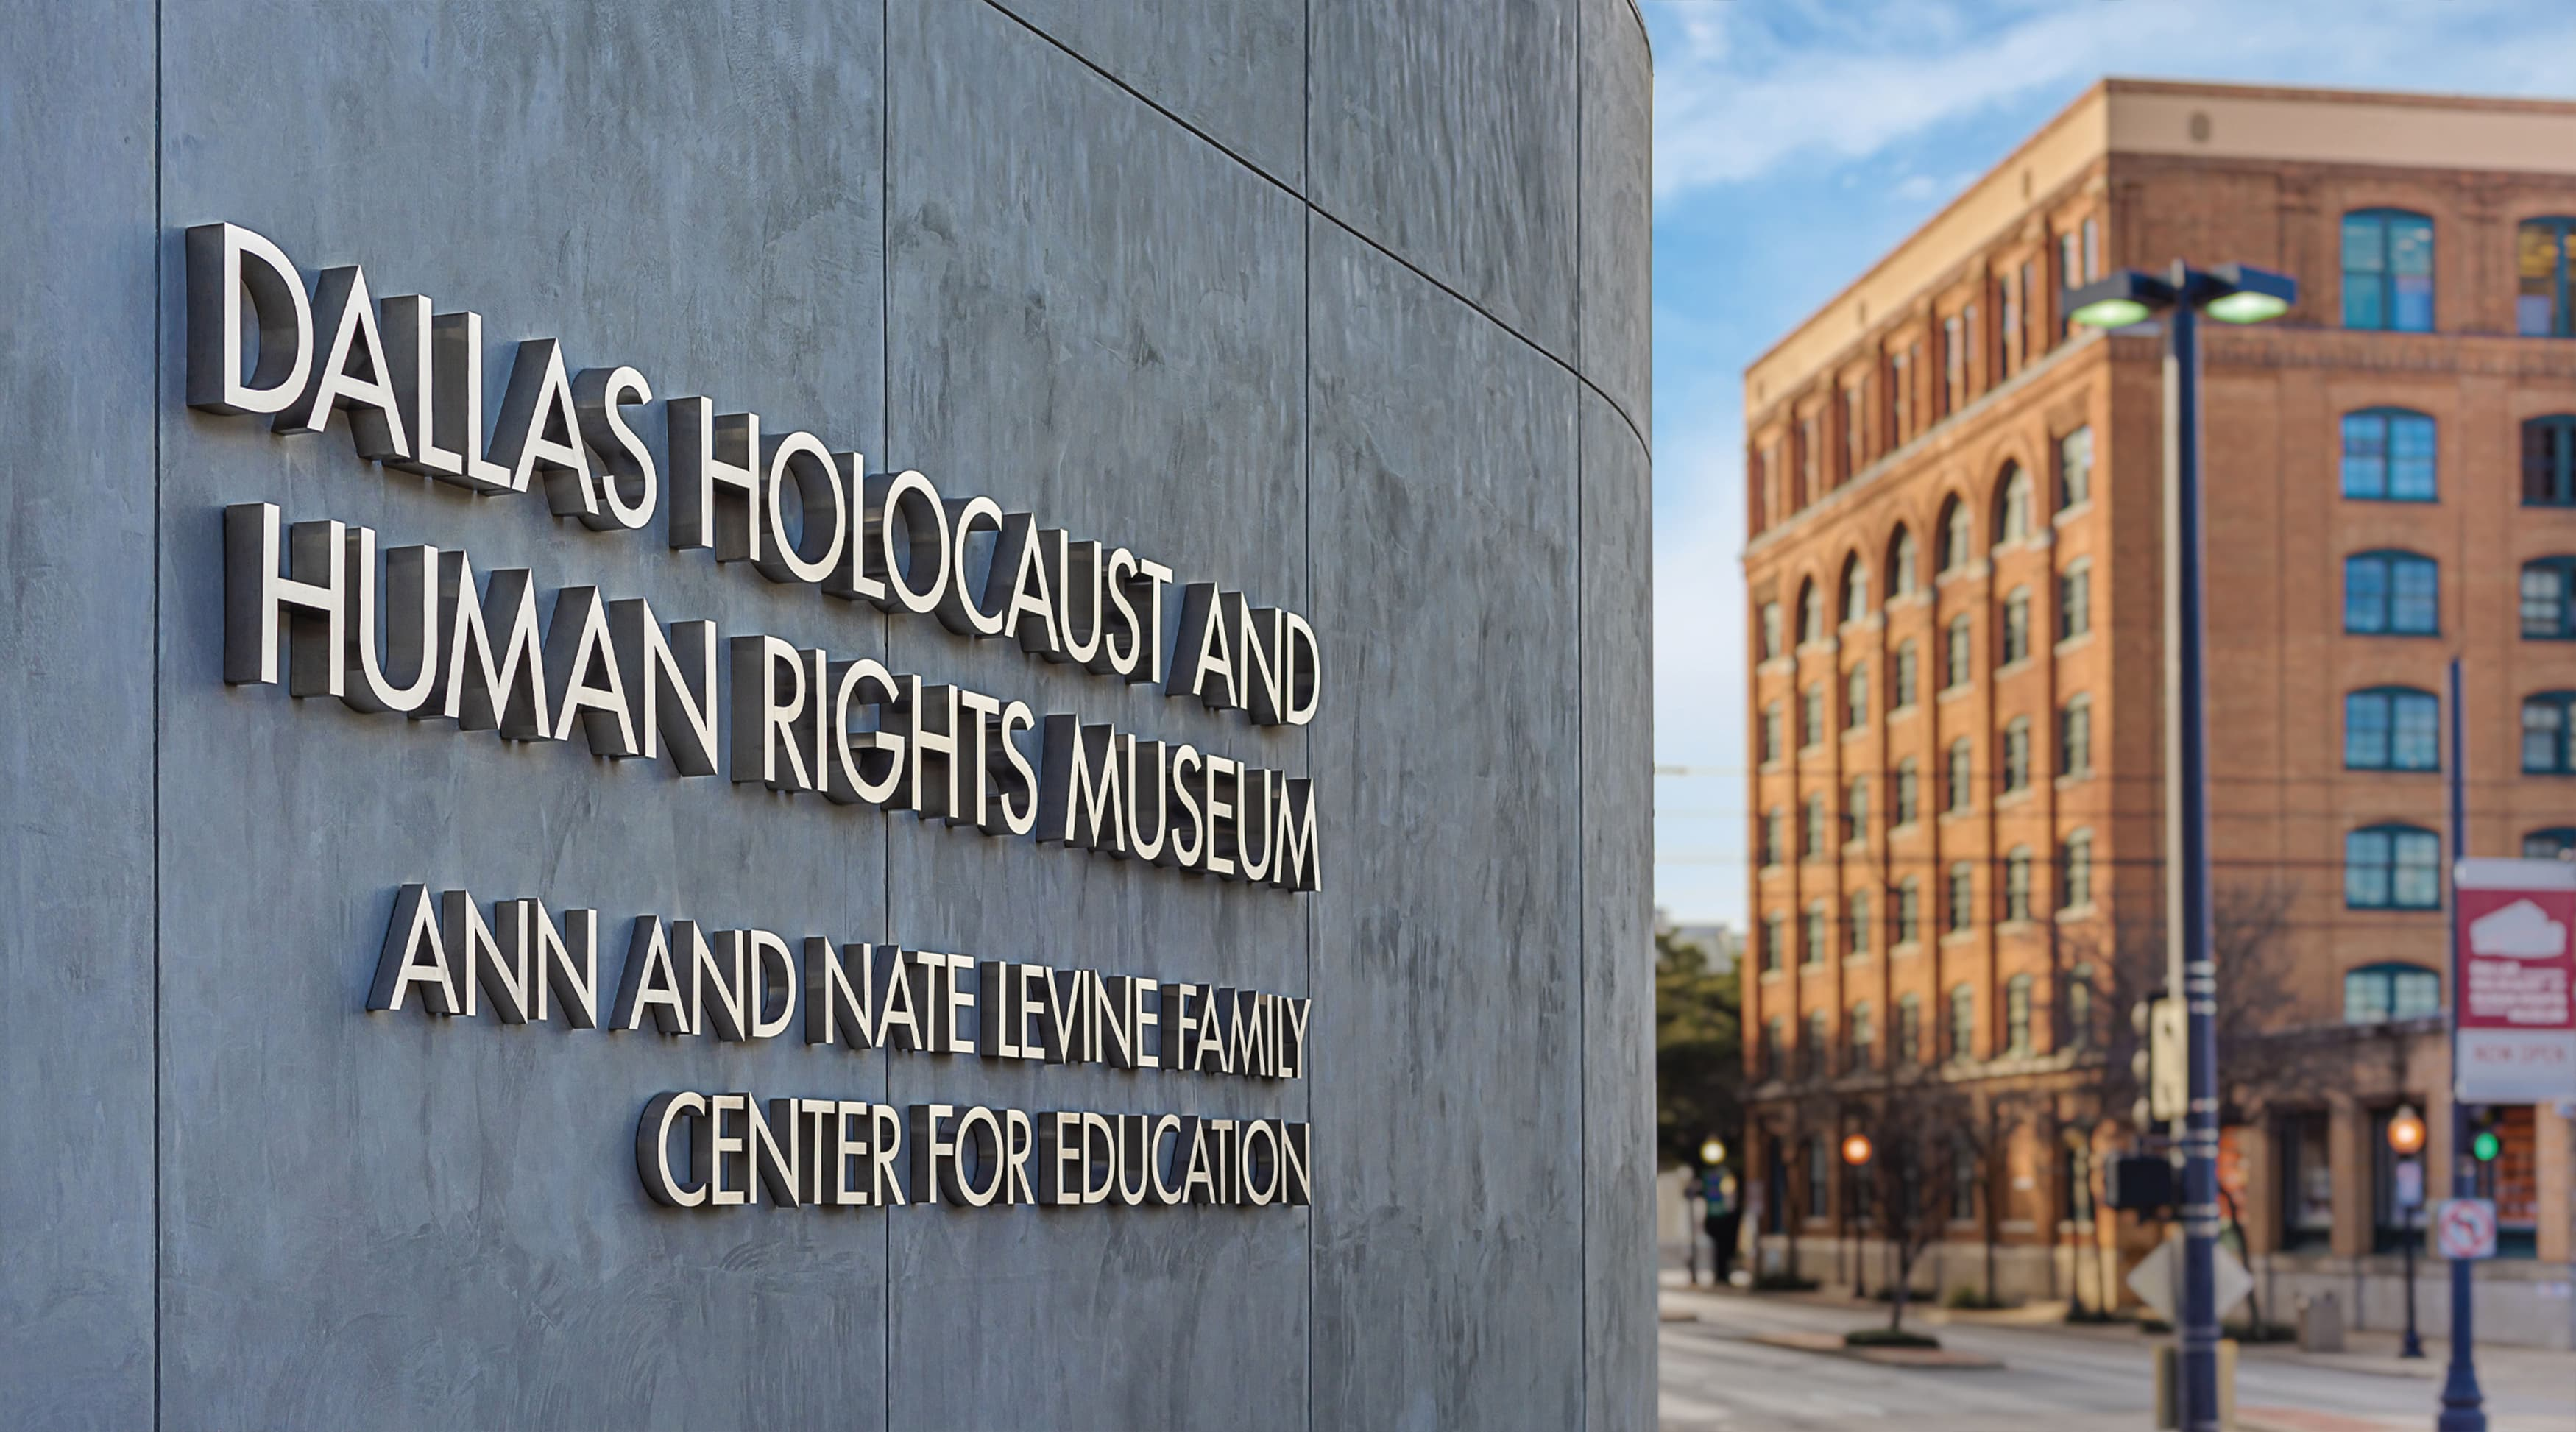 Dallas Holocaust and Human Rights Museum sign identity